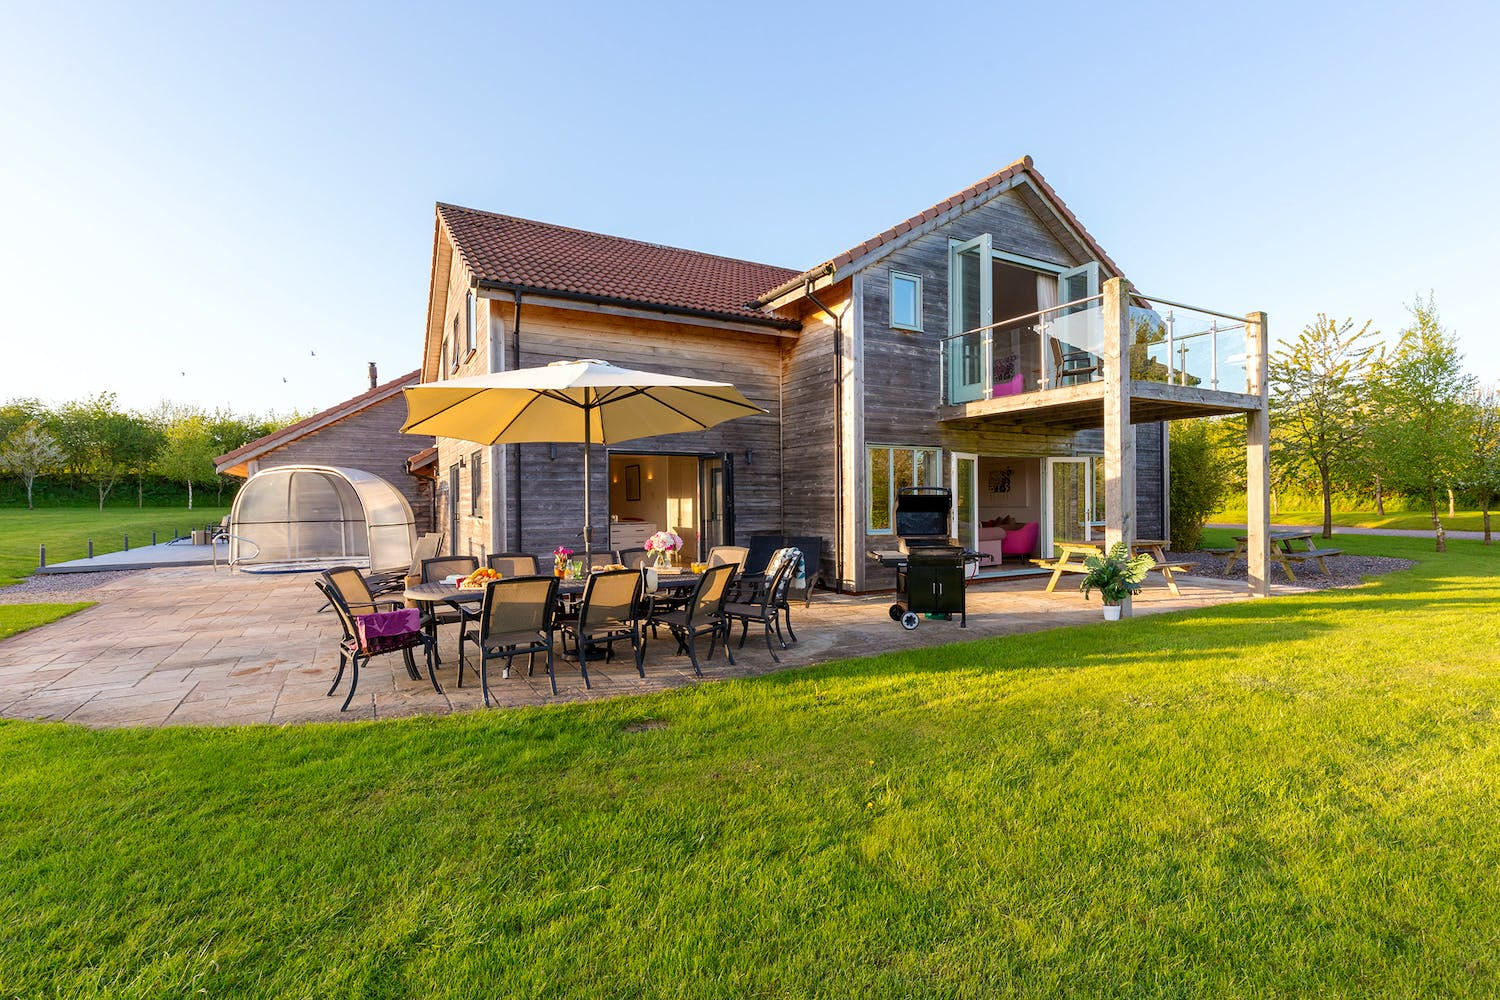 Holiday homes and group accommodation with 6 bedrooms - Holiday homes in somerset with swimming pool ...